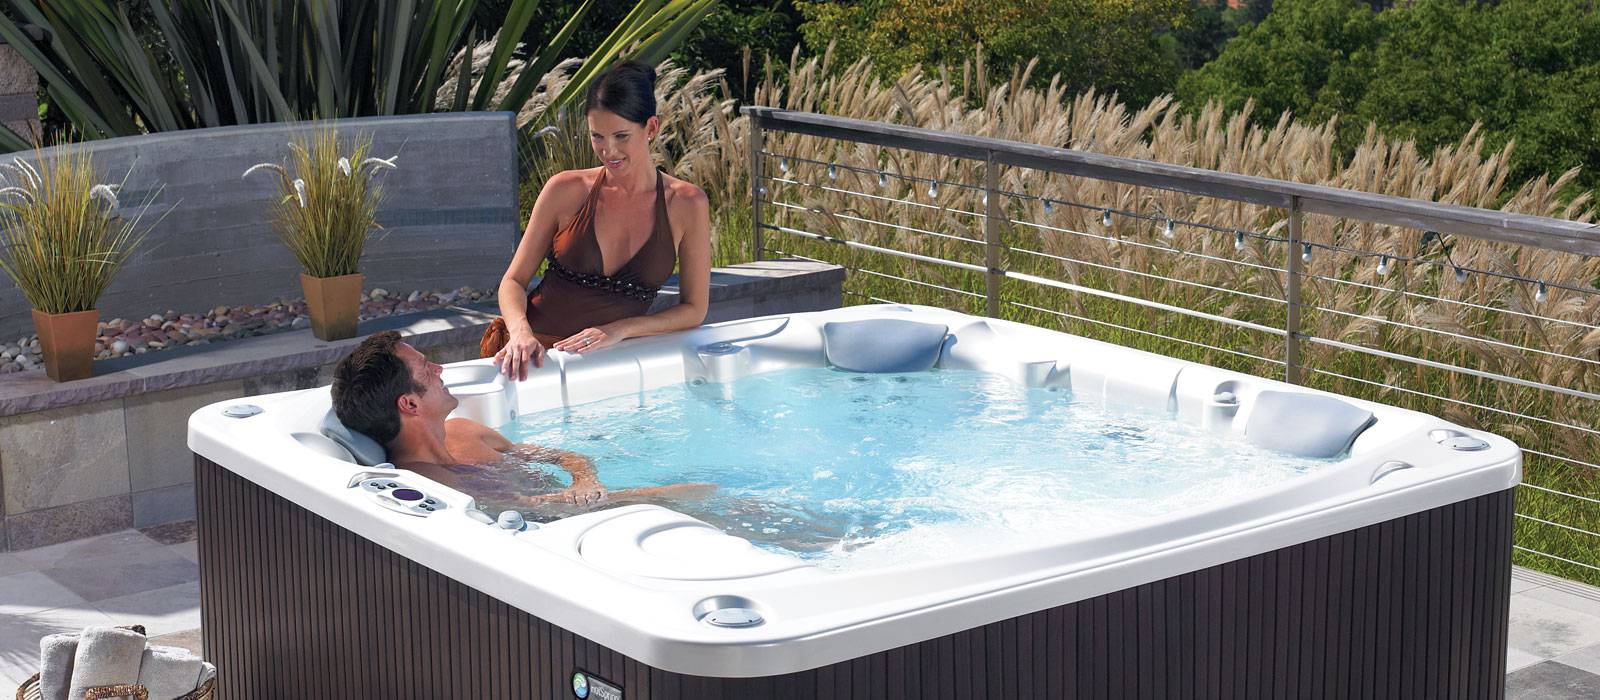 Flair 6 person Hot Tub from Limelight Collection